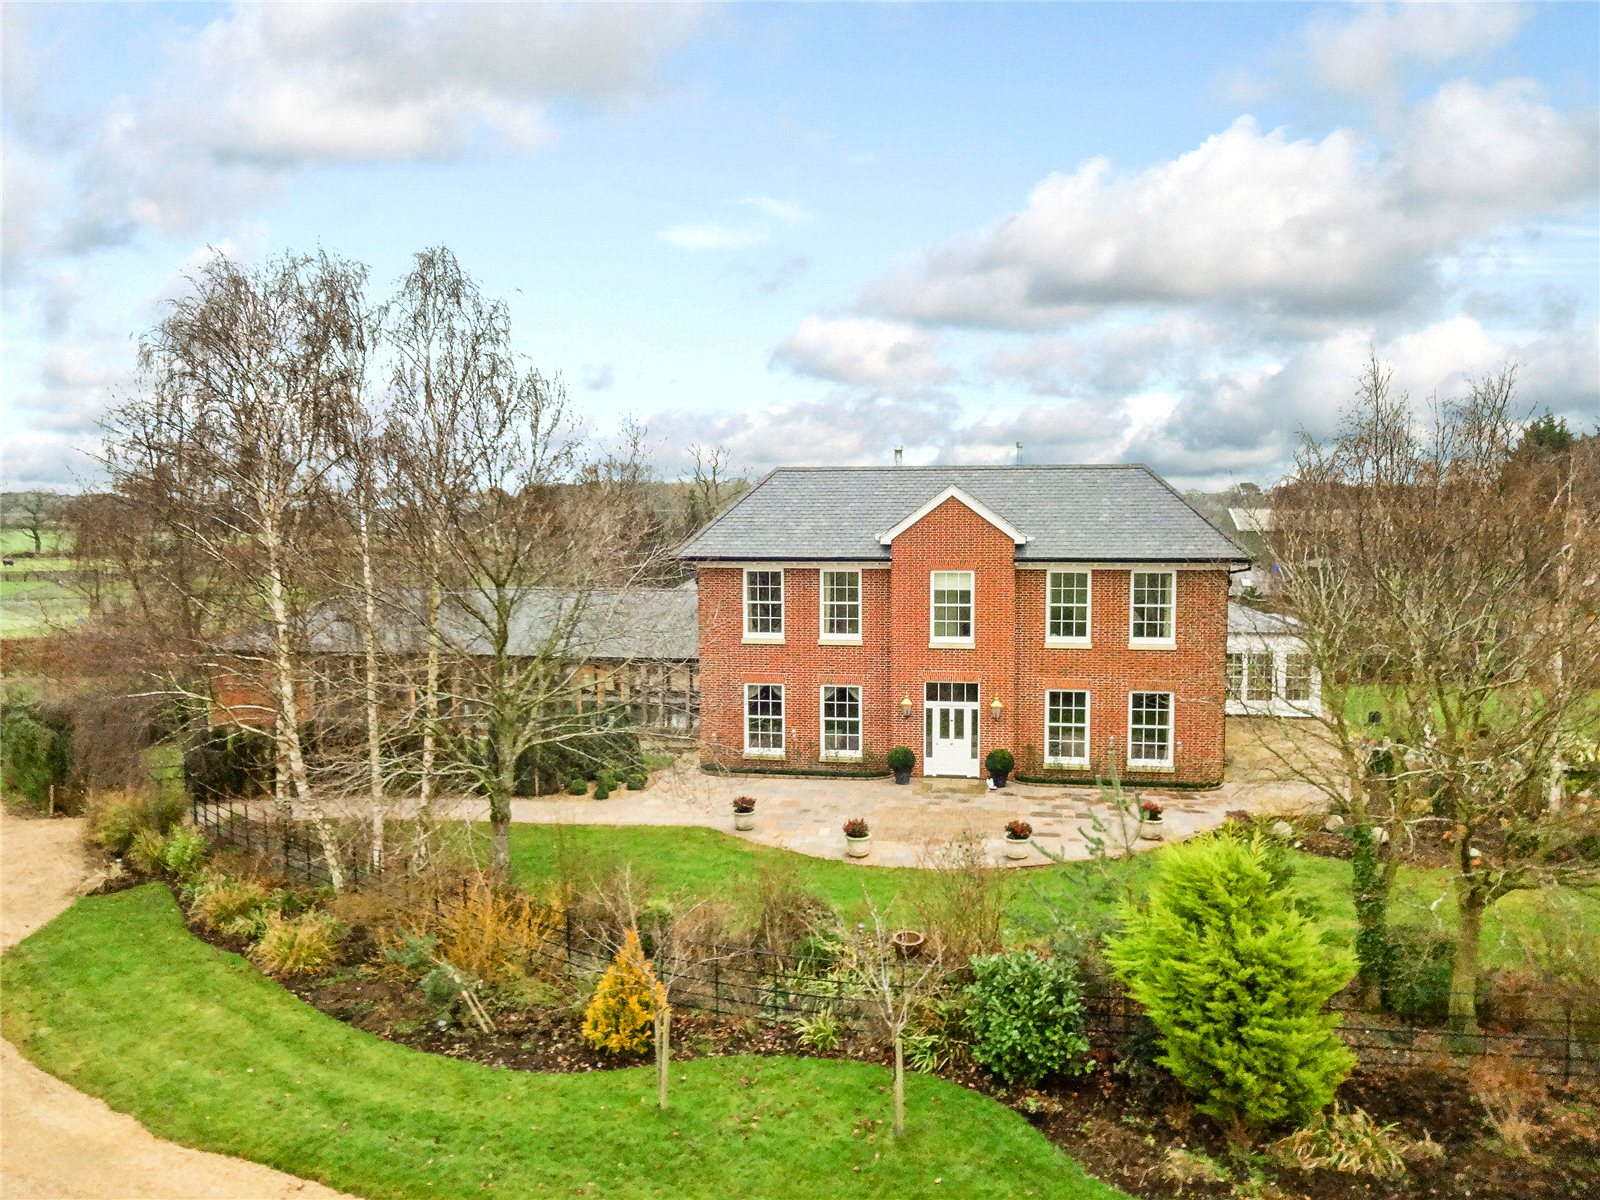 Apartments / Residences for Sale at Hothorpe, Theddingworth, Lutterworth, Leicestershire, LE17 Lutterworth, England